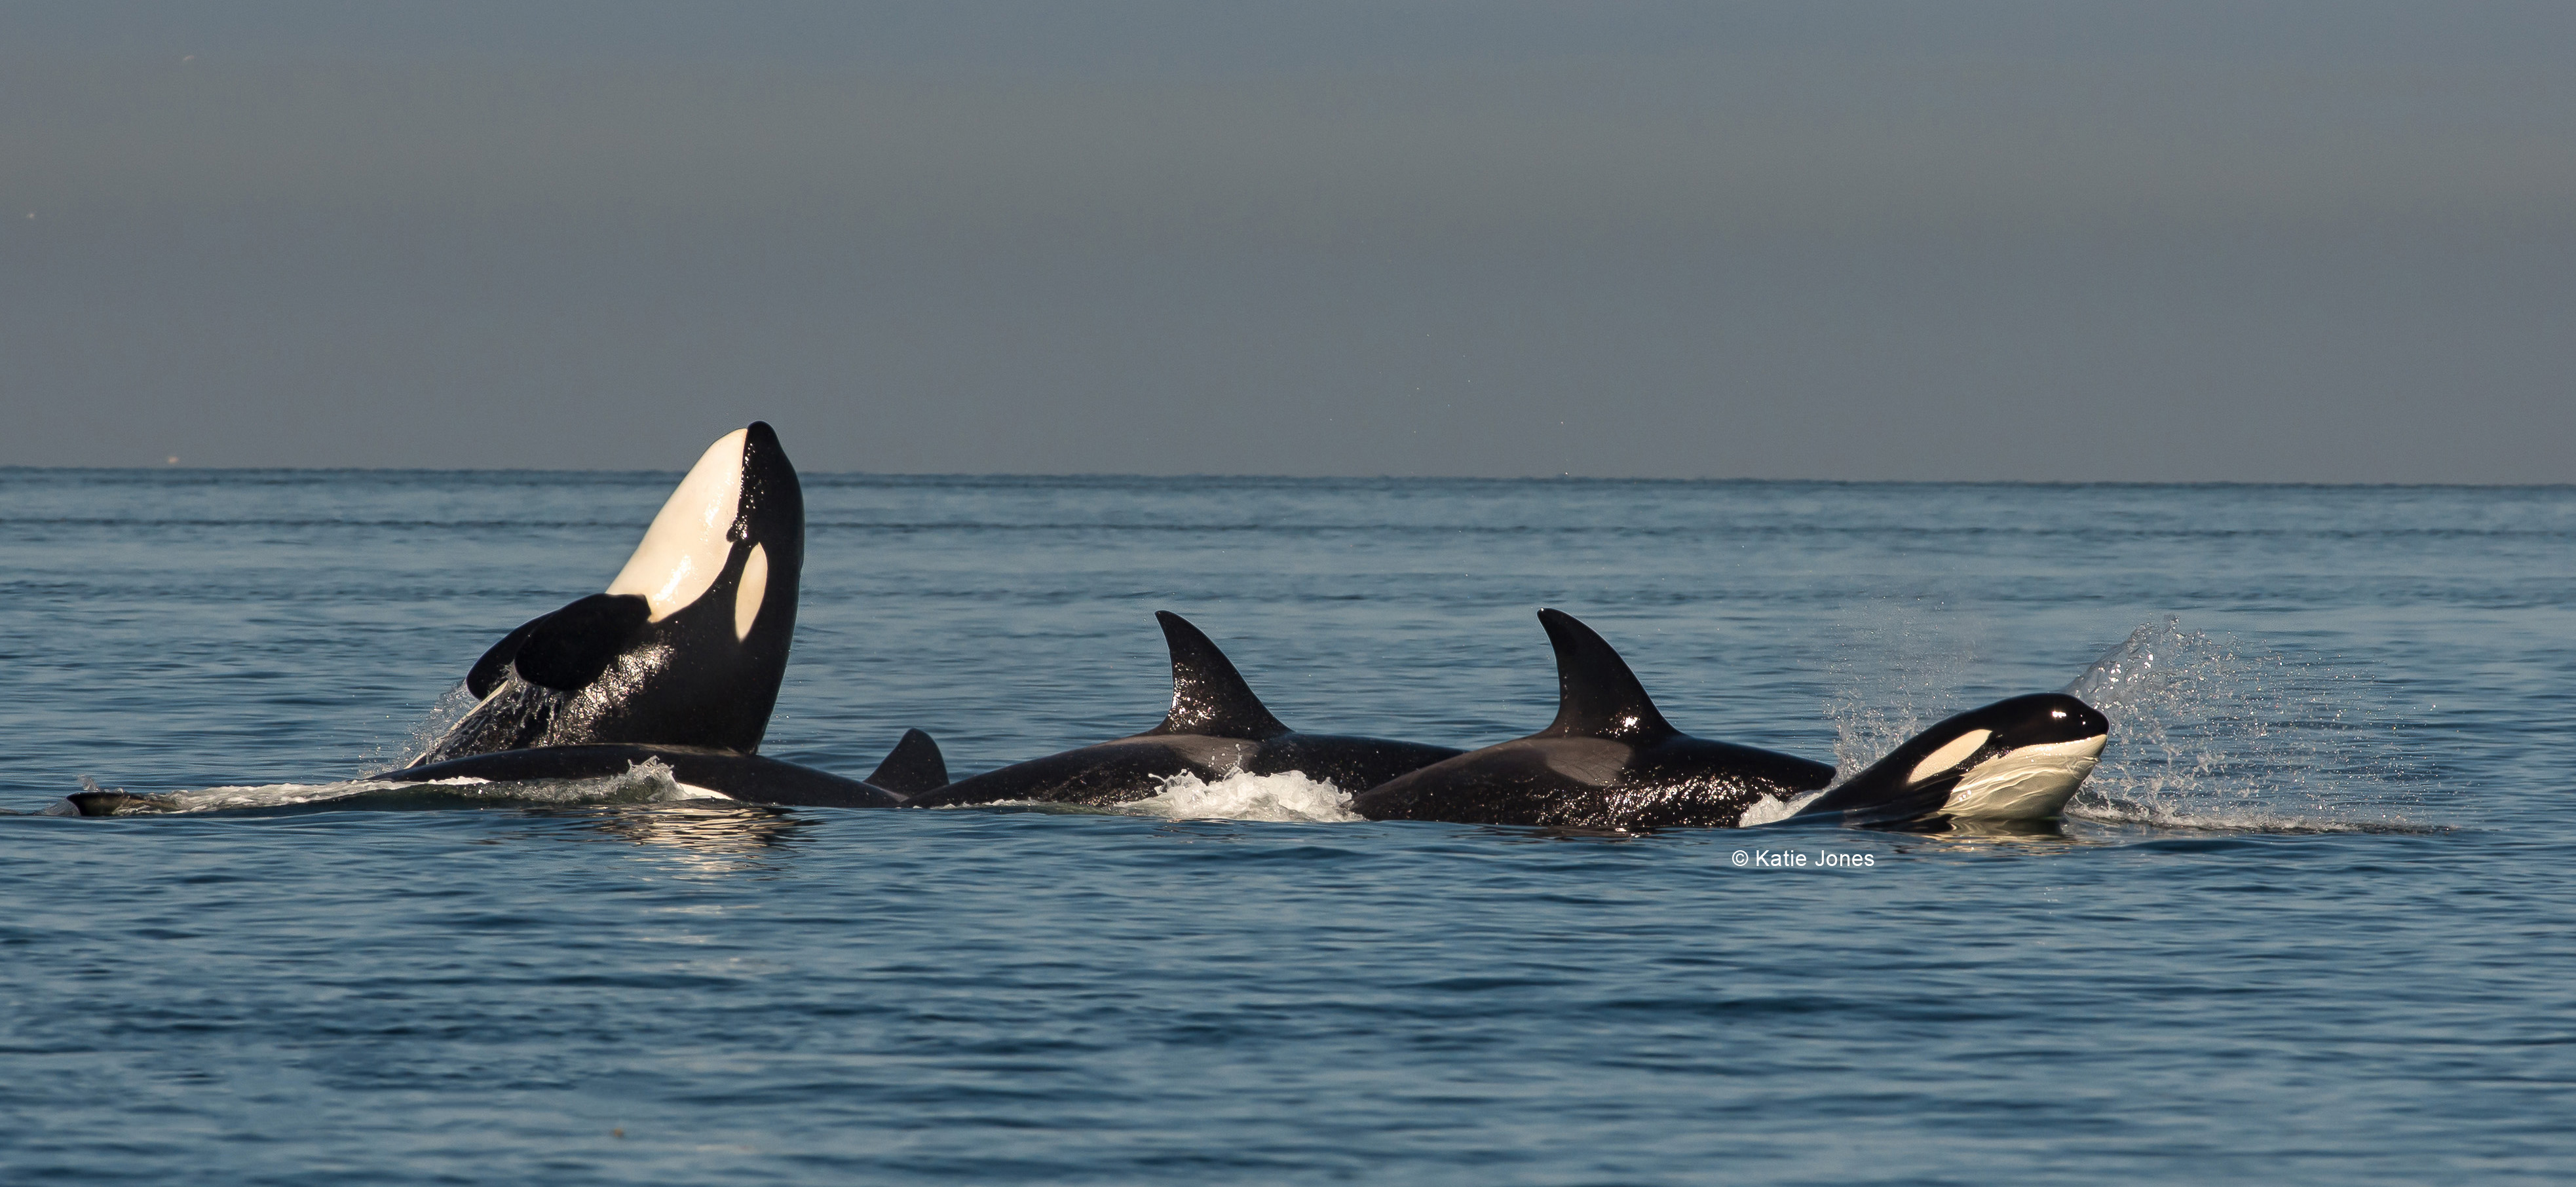 SOUTHERN RESIDENT KILLER WHALES